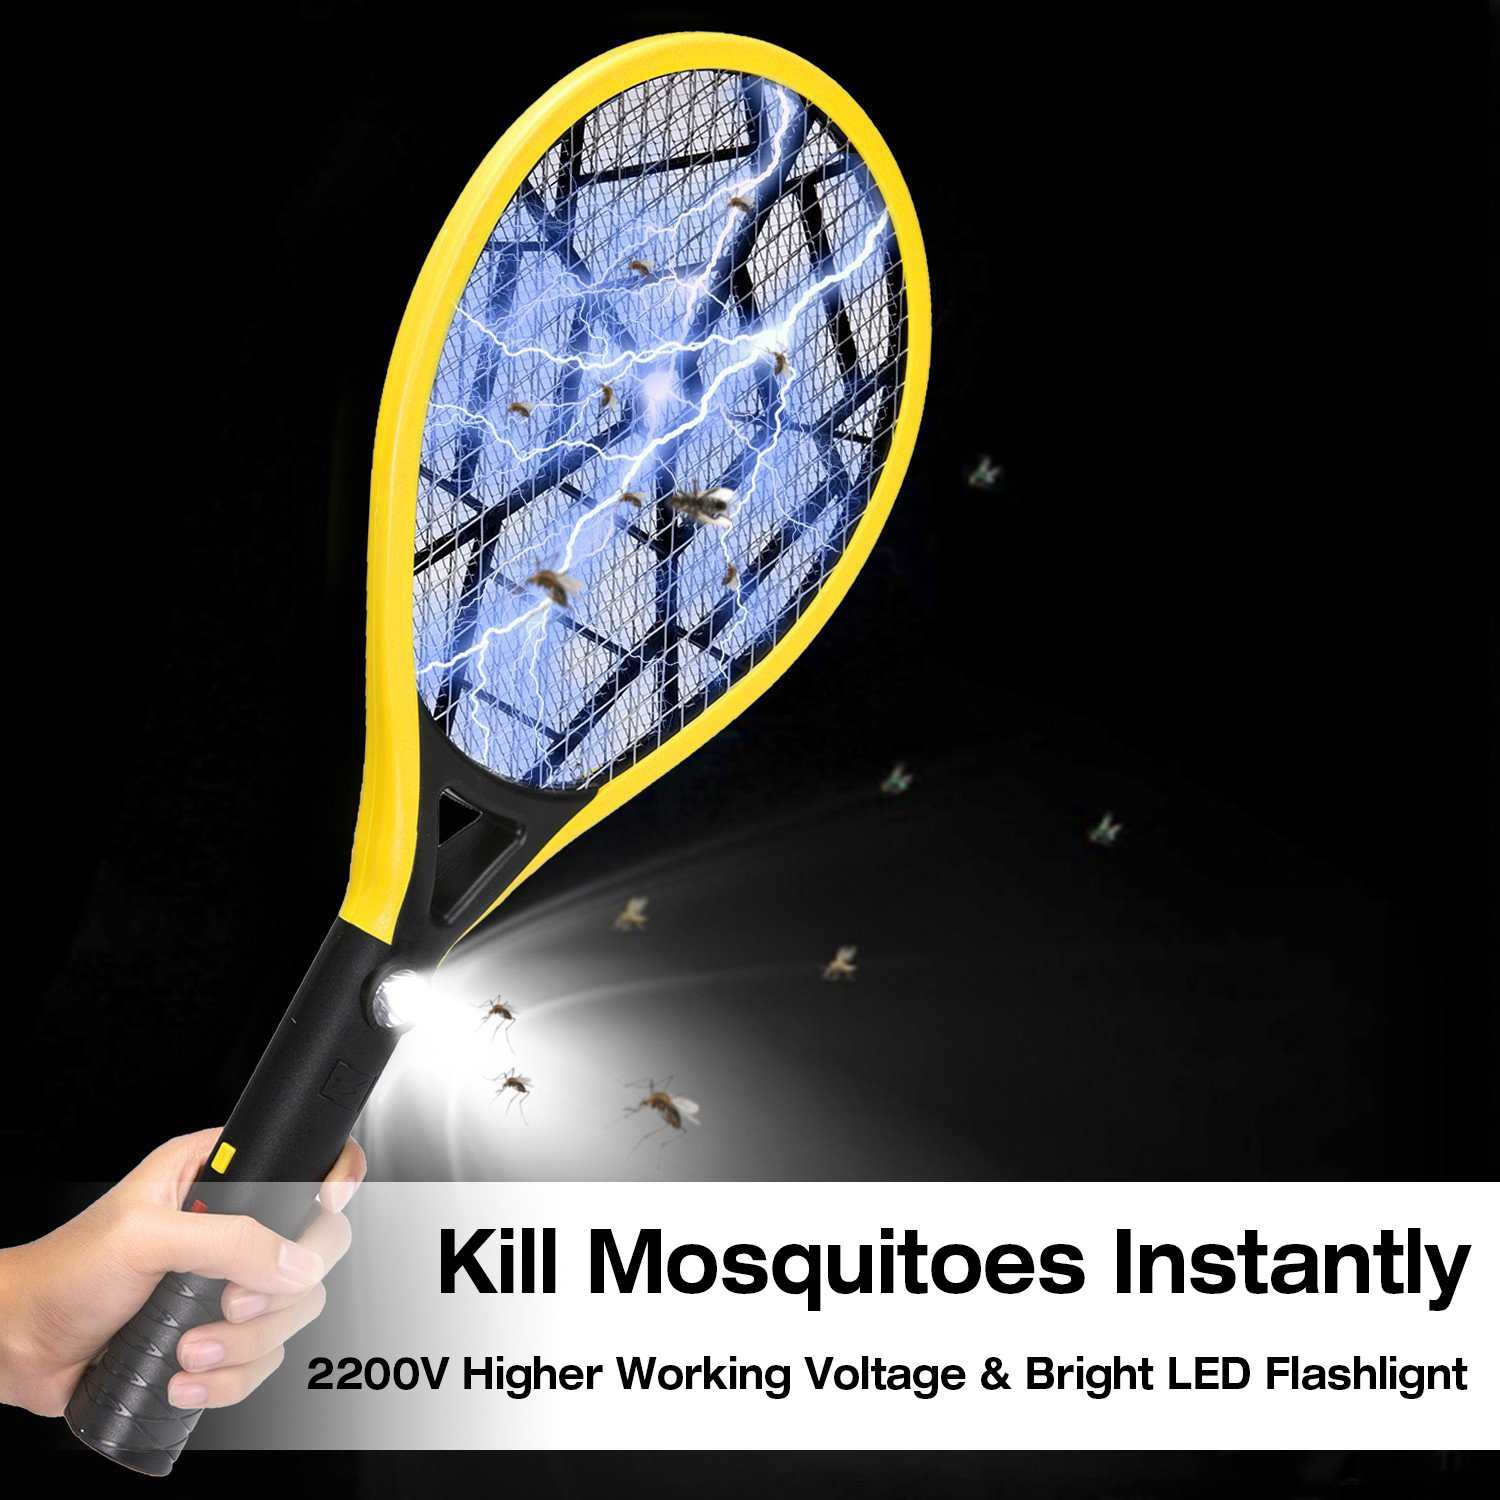 Rechargeable Electronic Mosquito Pest Killer Mesh Fly Swatter with LED Light Bug Zapper Racket Insects Killer CordlessRechargeable Electronic Mosquito Pest Killer Mesh Fly Swatter with LED Light Bug Zapper Racket Insects Killer Cordless